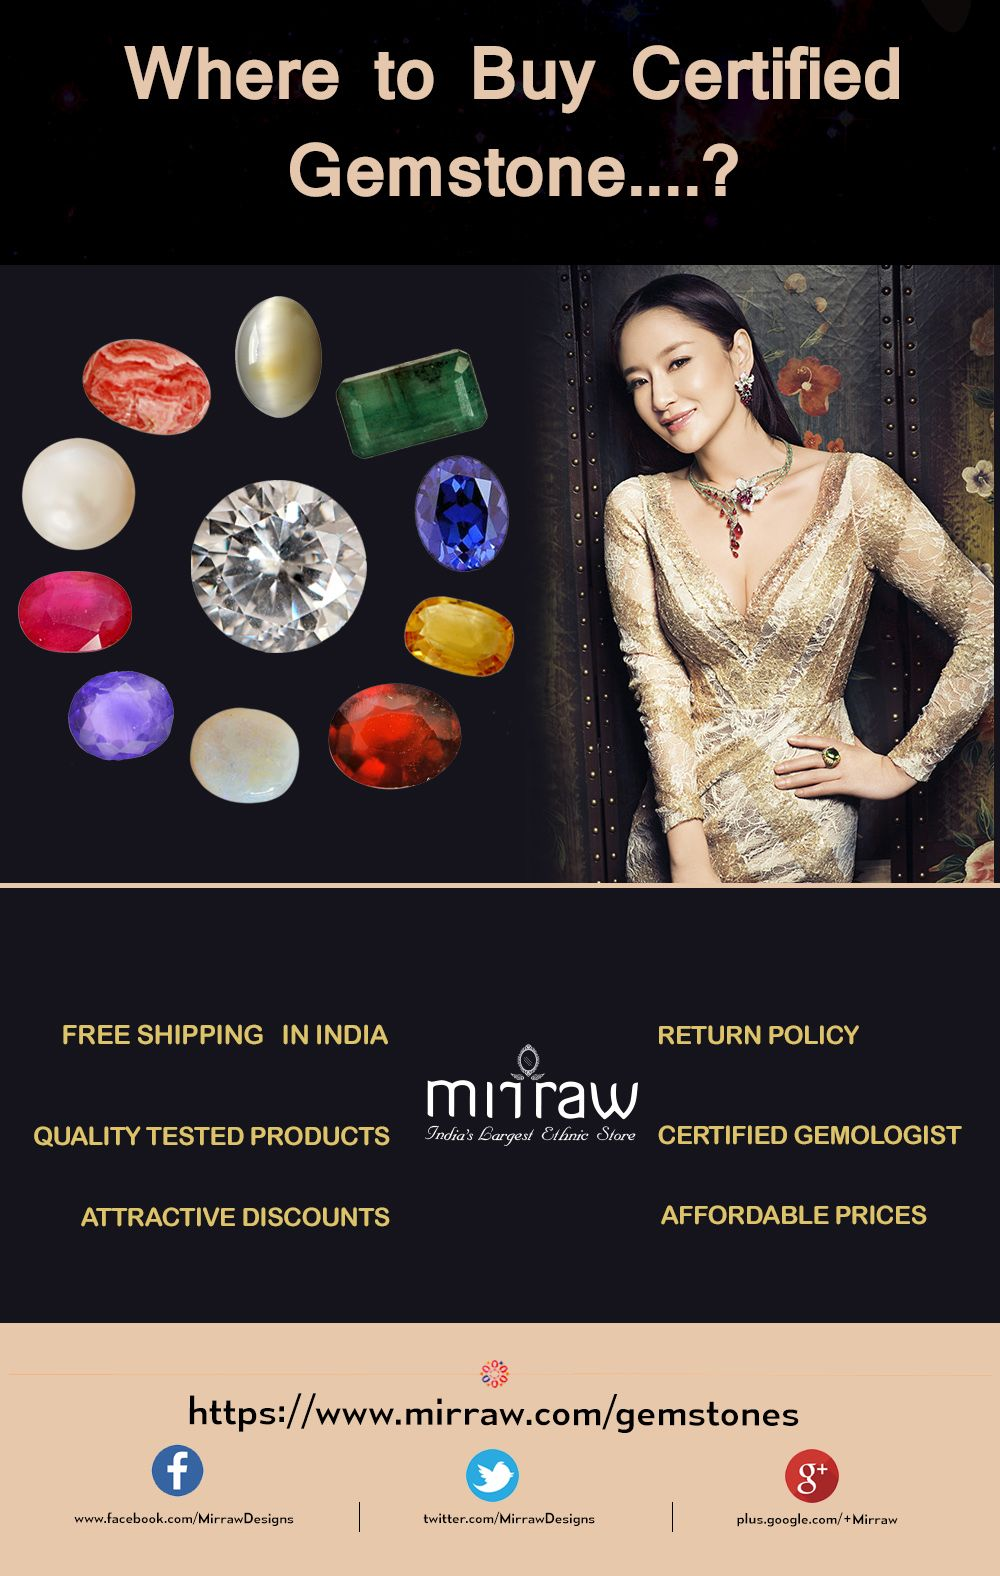 To buy certified Gemstones at affordable prices, visit a